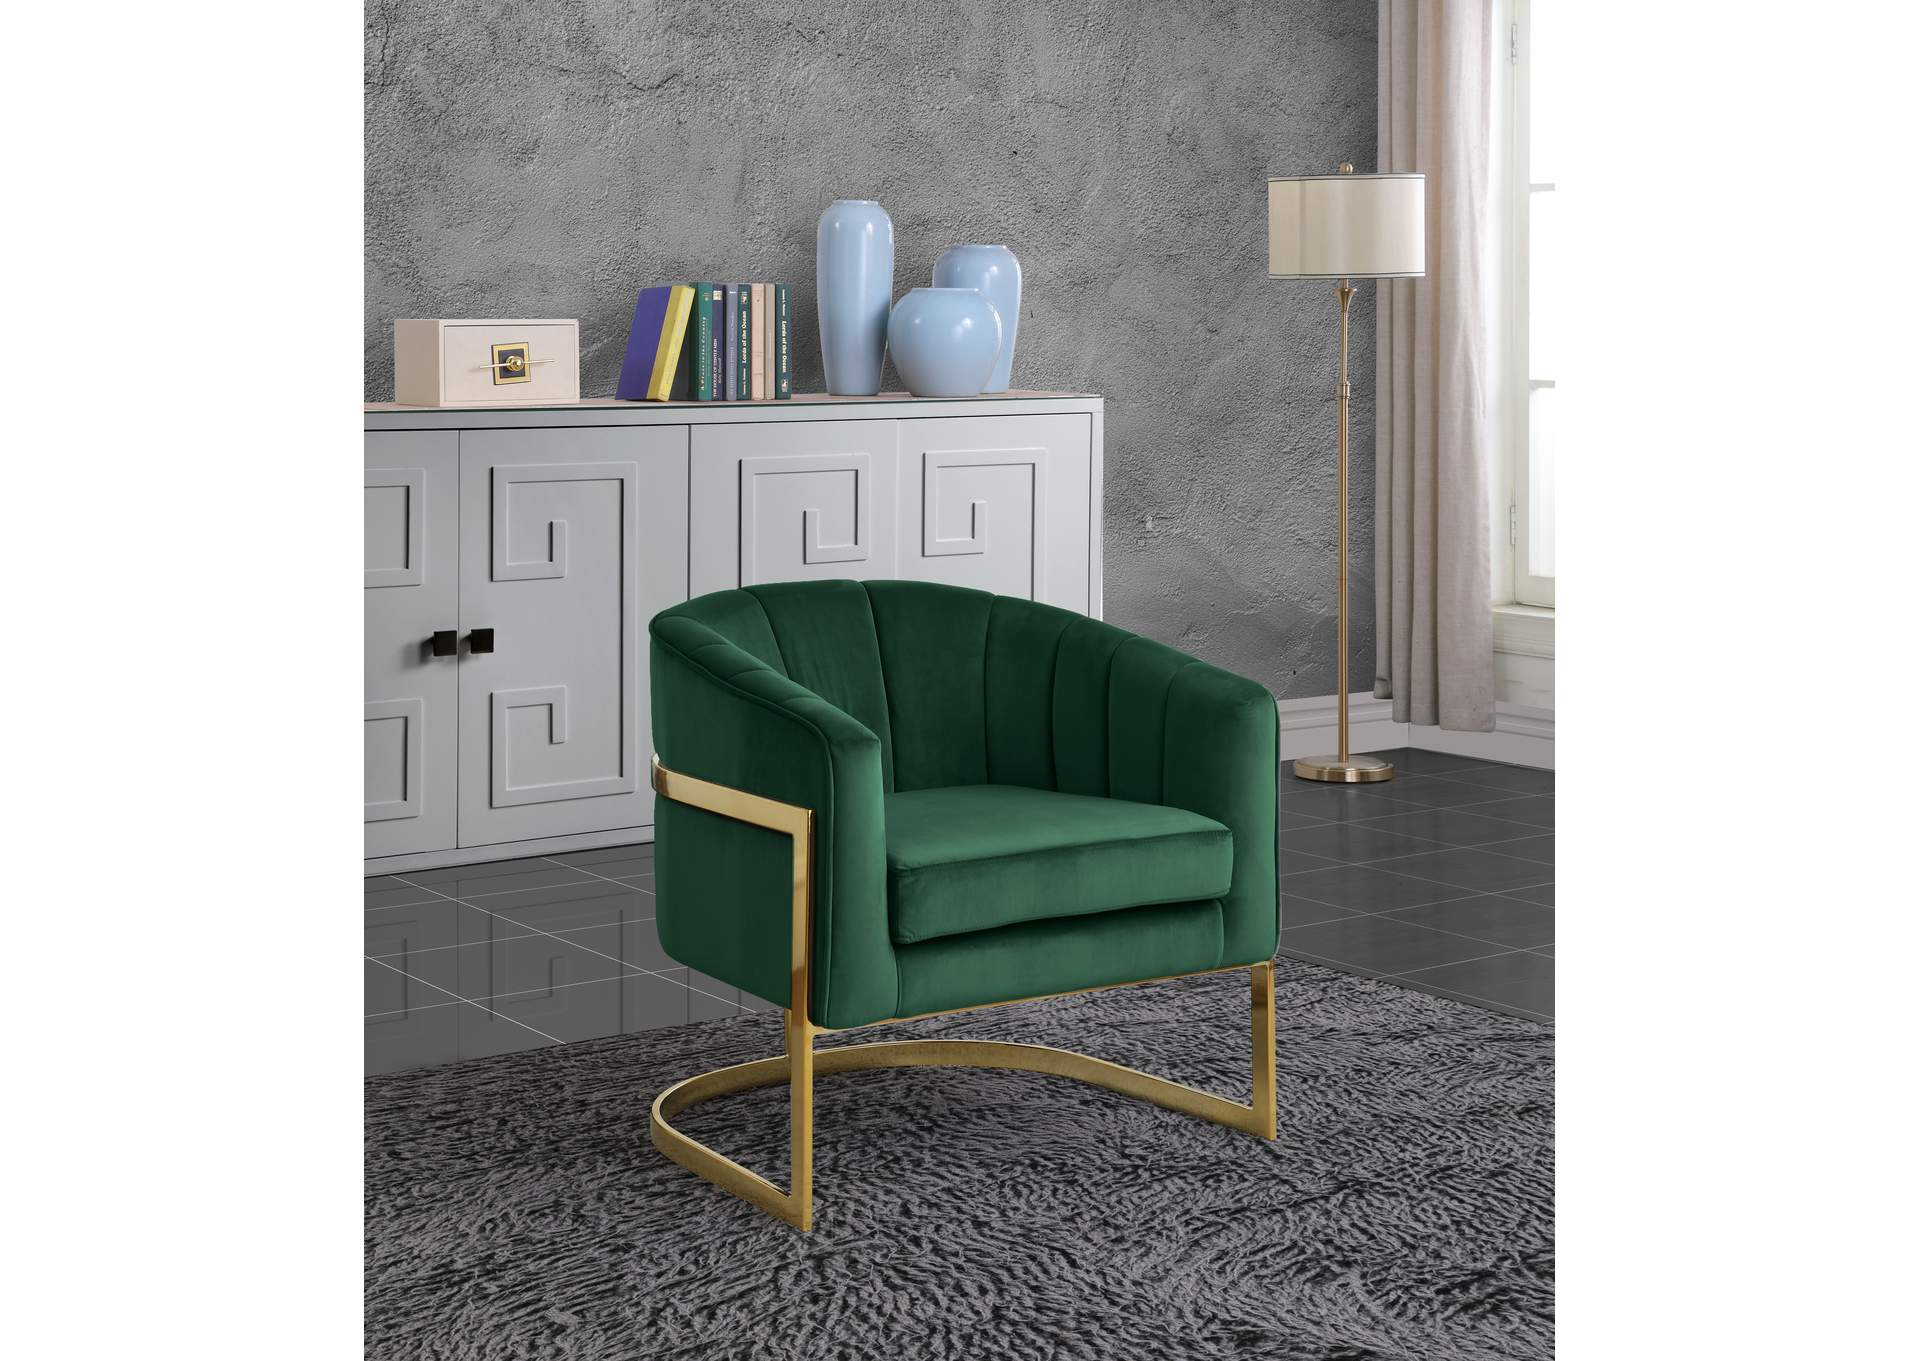 Outstanding Furniture Ville Bronx Ny Carter Green Velvet Accent Chair Machost Co Dining Chair Design Ideas Machostcouk